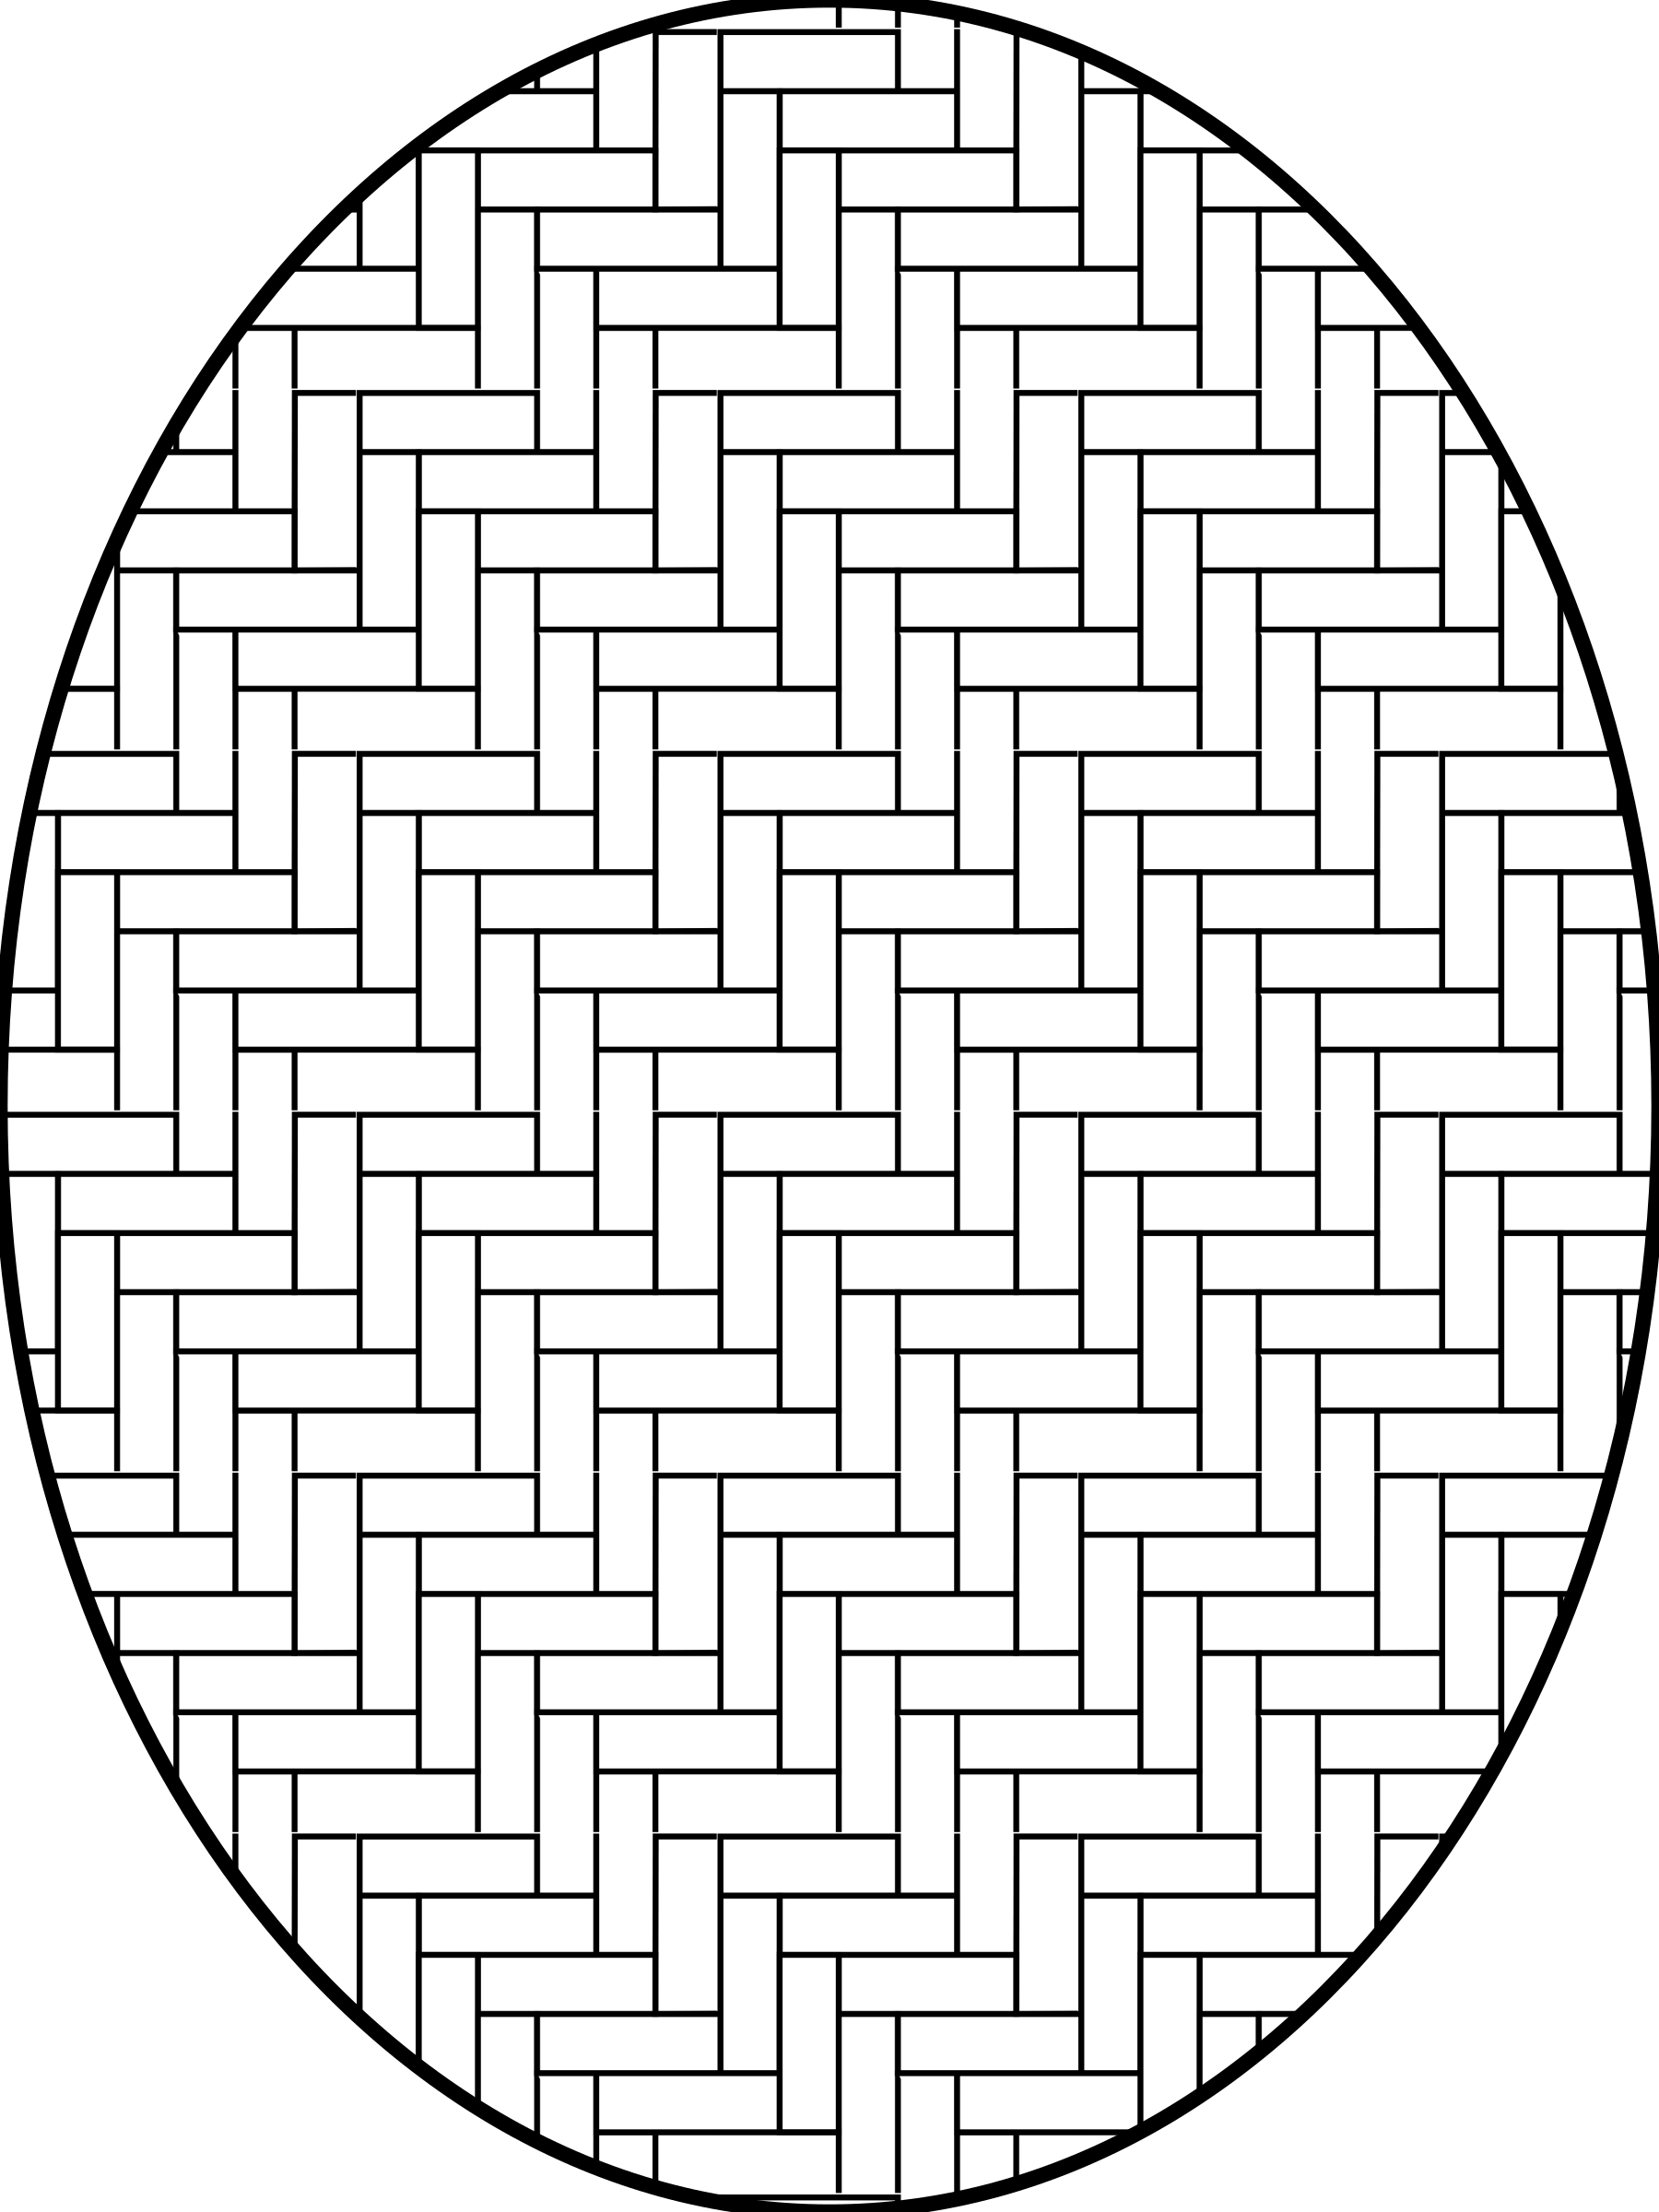 pattern herringbone outline by pitr